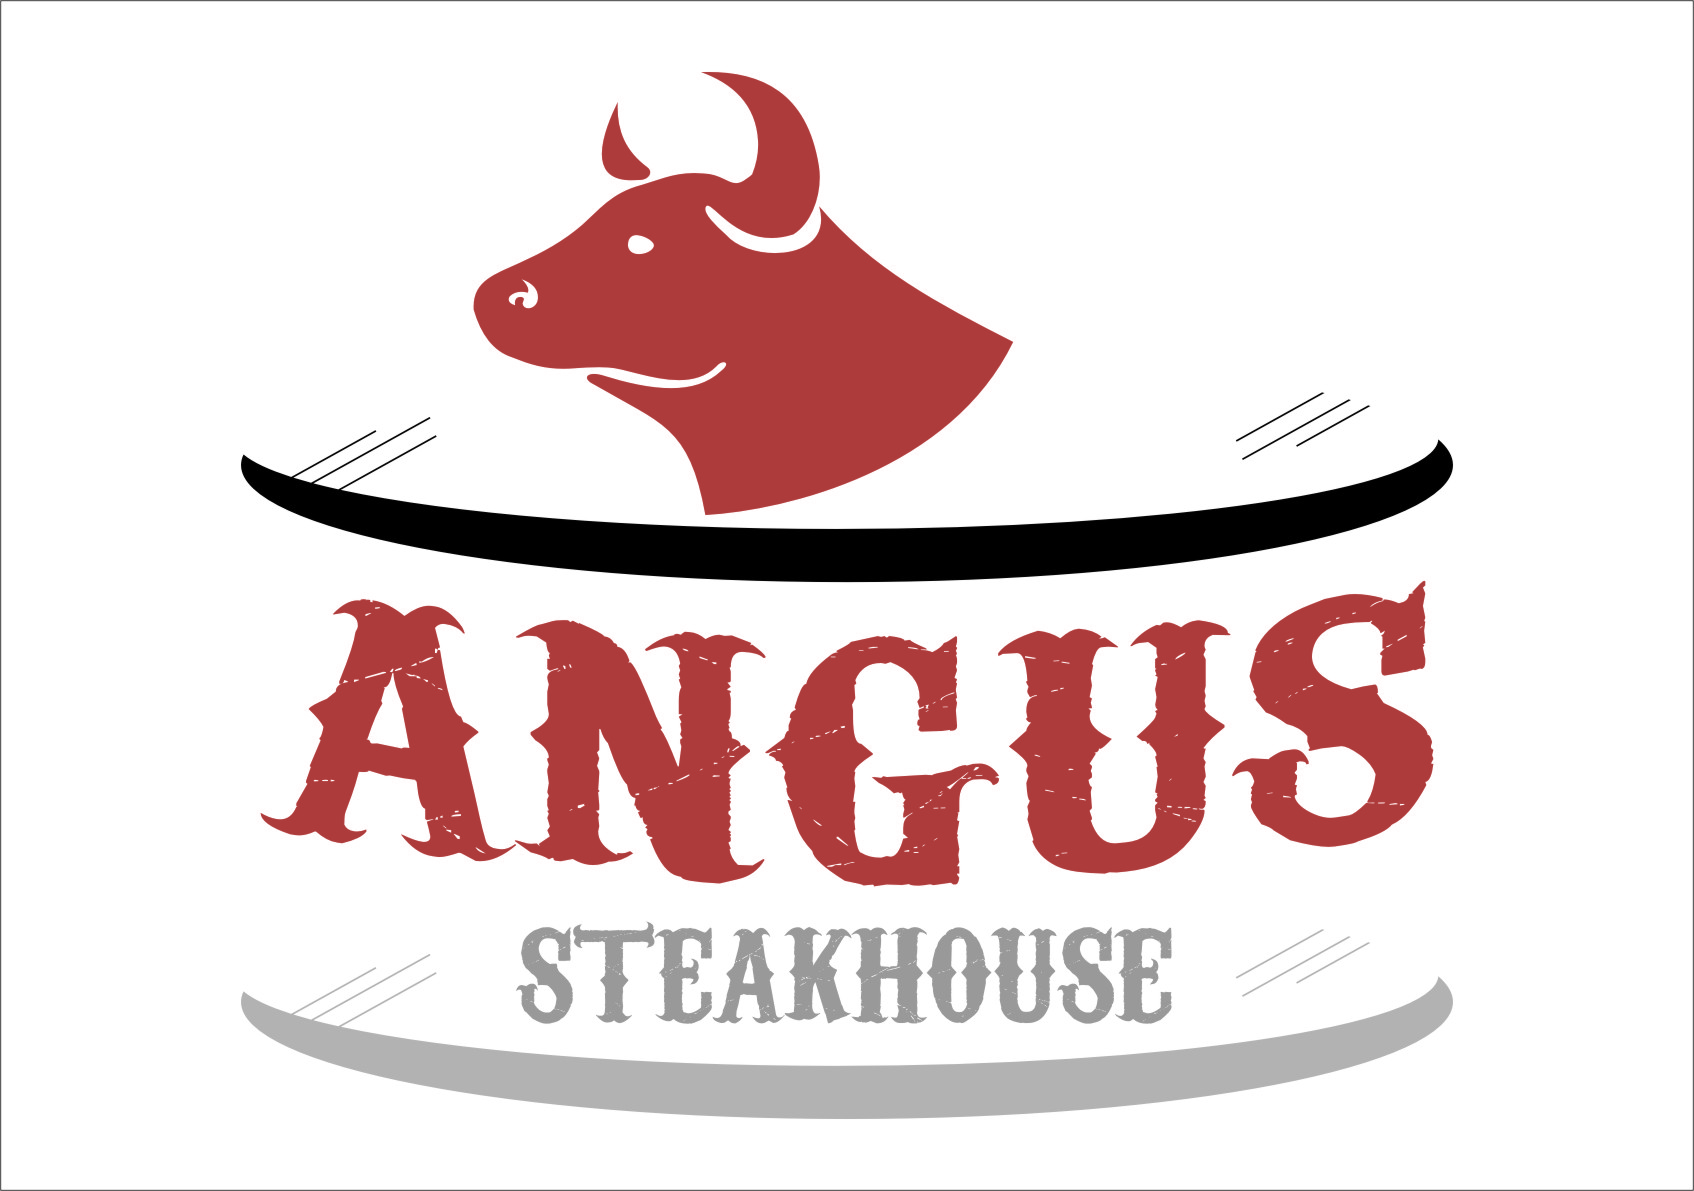 Logo Design by Ngepet_art - Entry No. 3 in the Logo Design Contest Imaginative Custom Design for Angus Steakhouse.